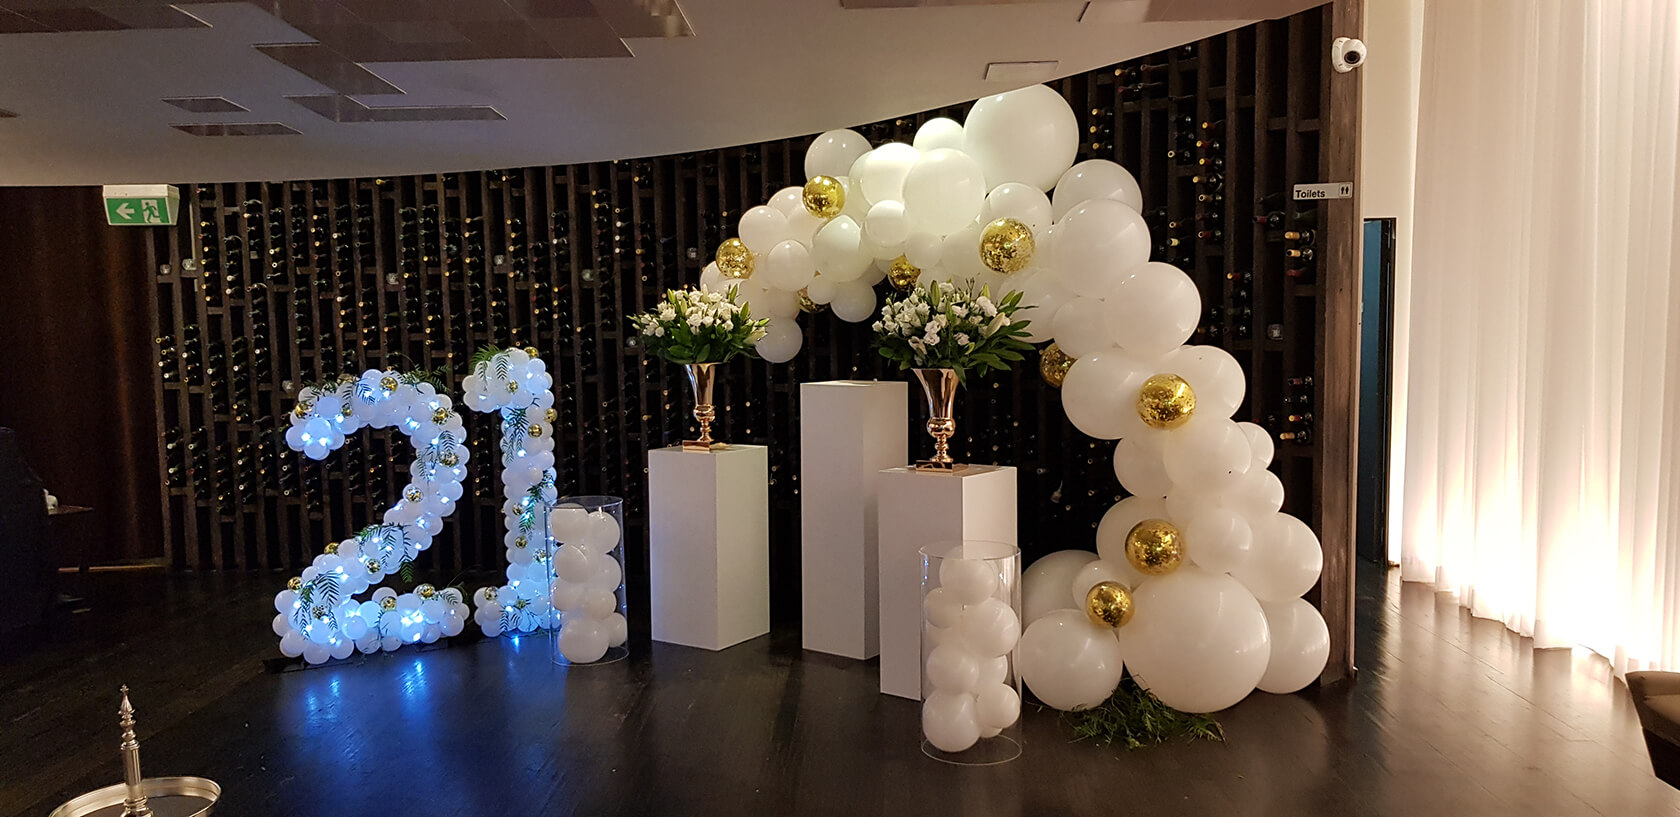 See Our Events! - image CE-47 on https://shivooballoons.com.au